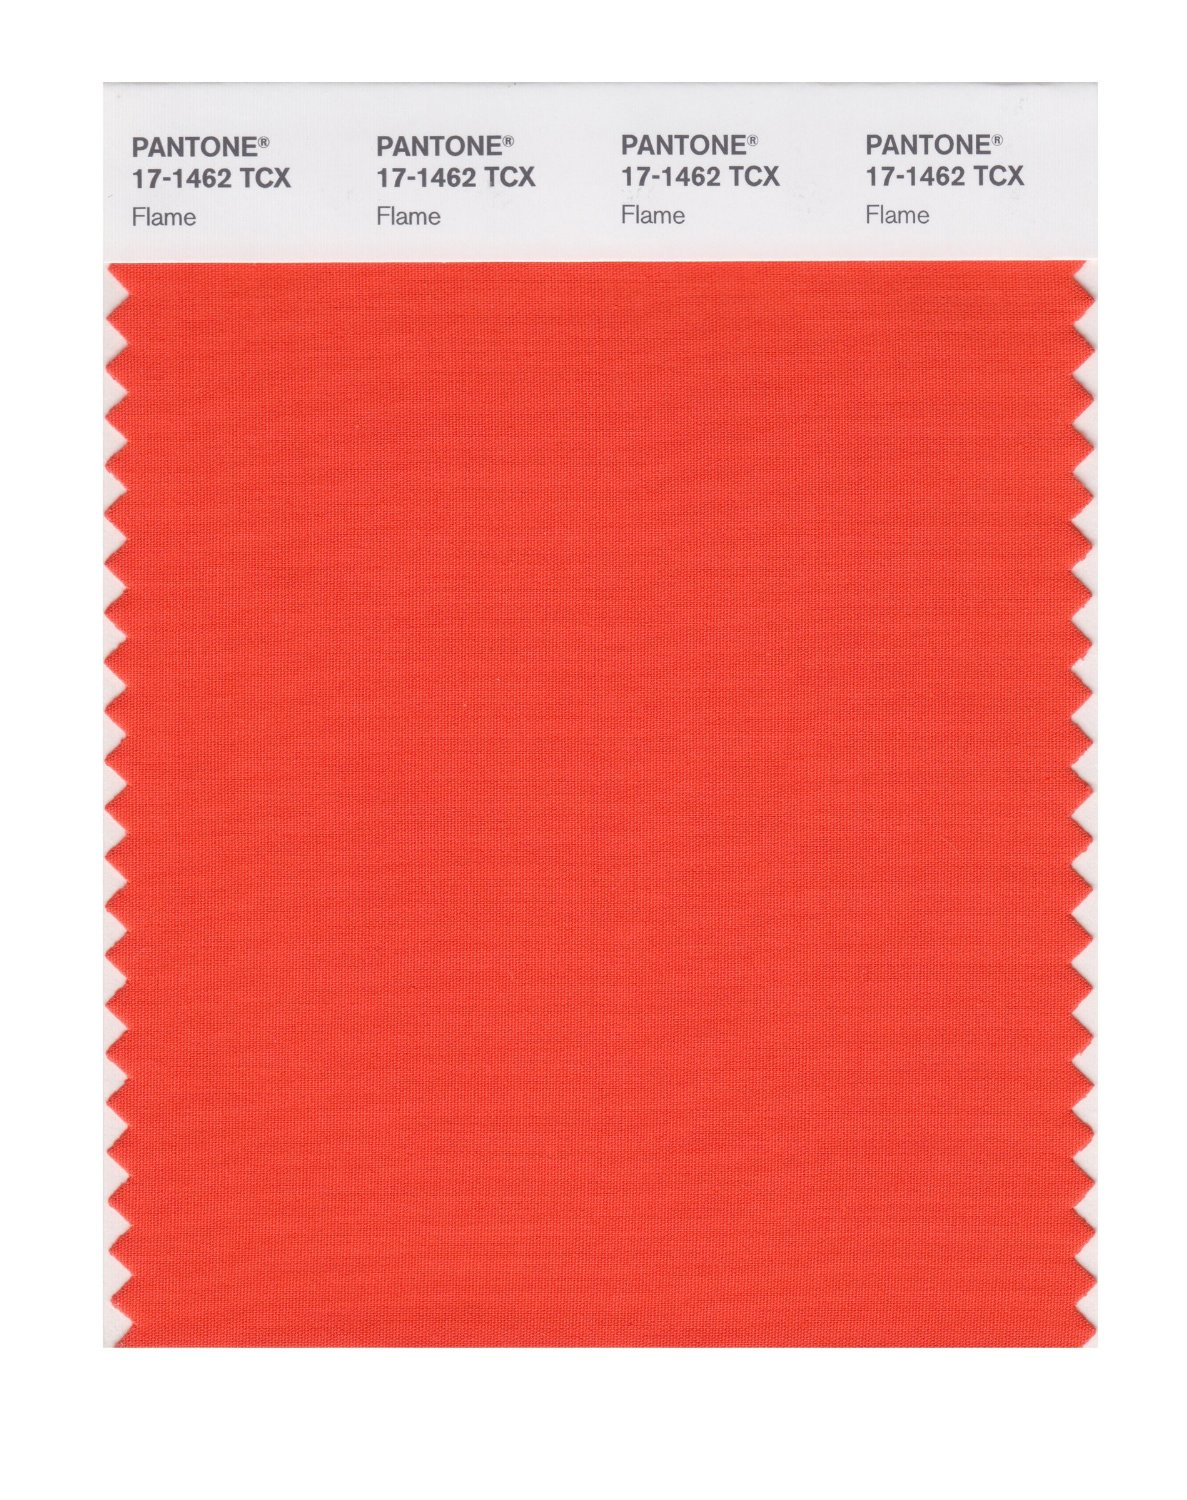 Pantone Smart Swatch 17-1462 Flame